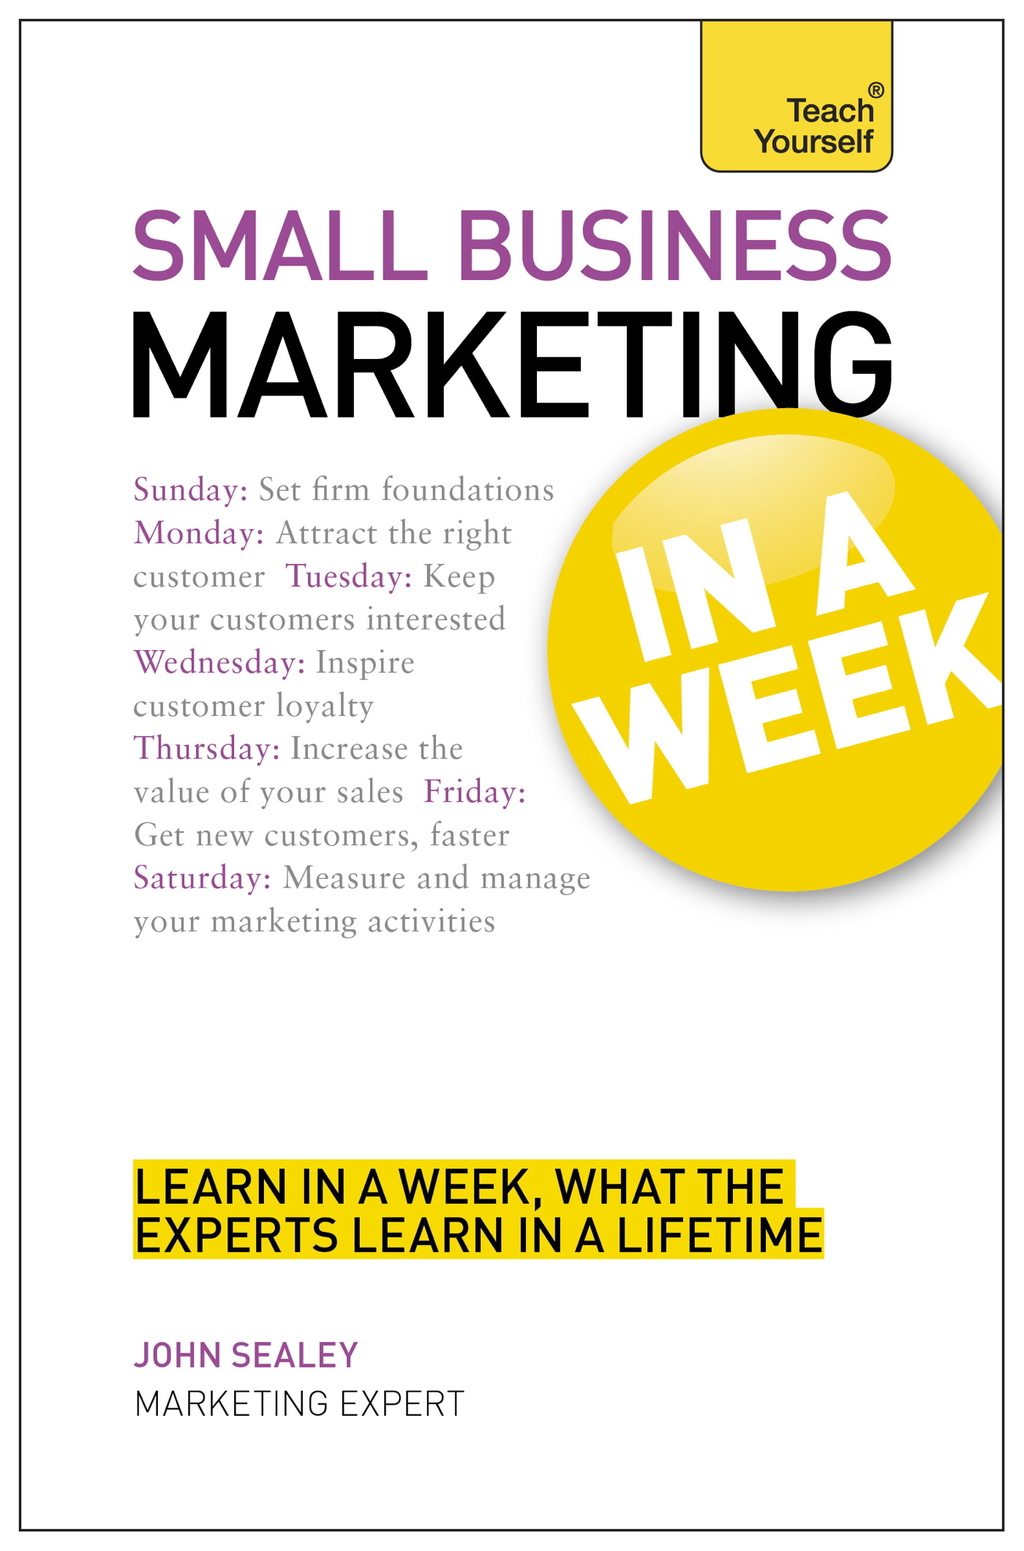 Small Business Marketing in a Week: Teach Yourself